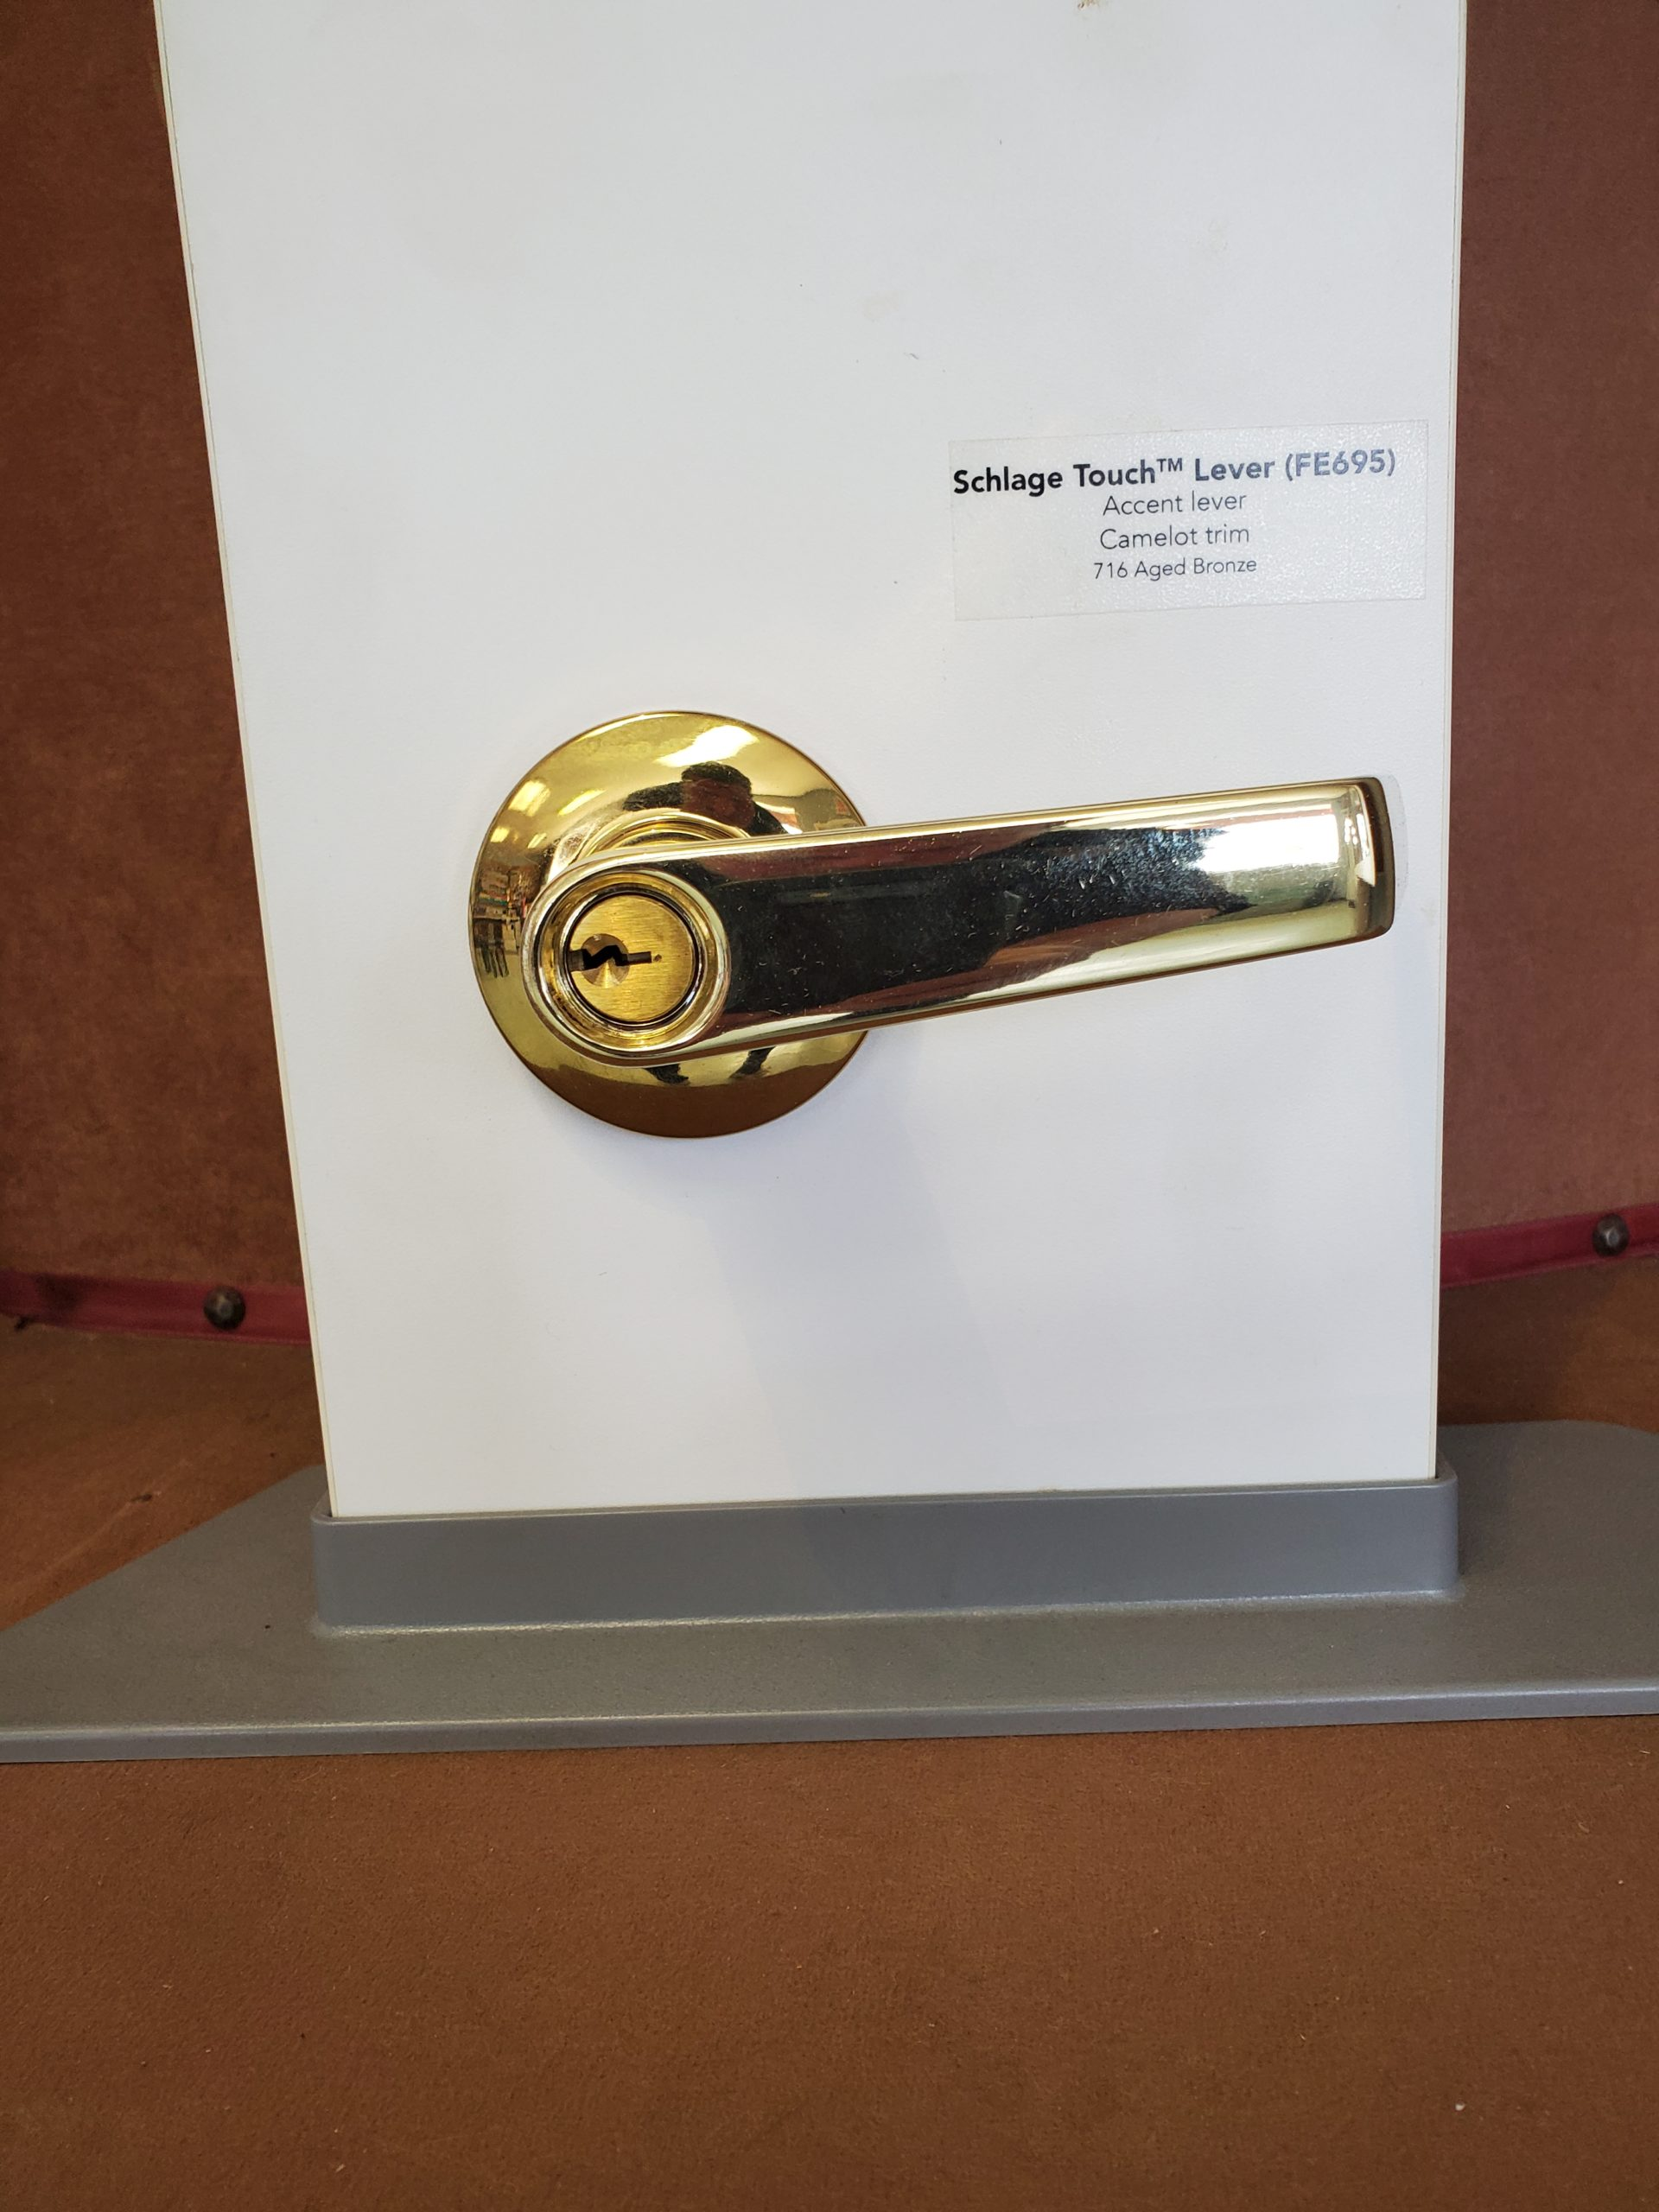 Monthly Special on Schlage S Sercies Levels